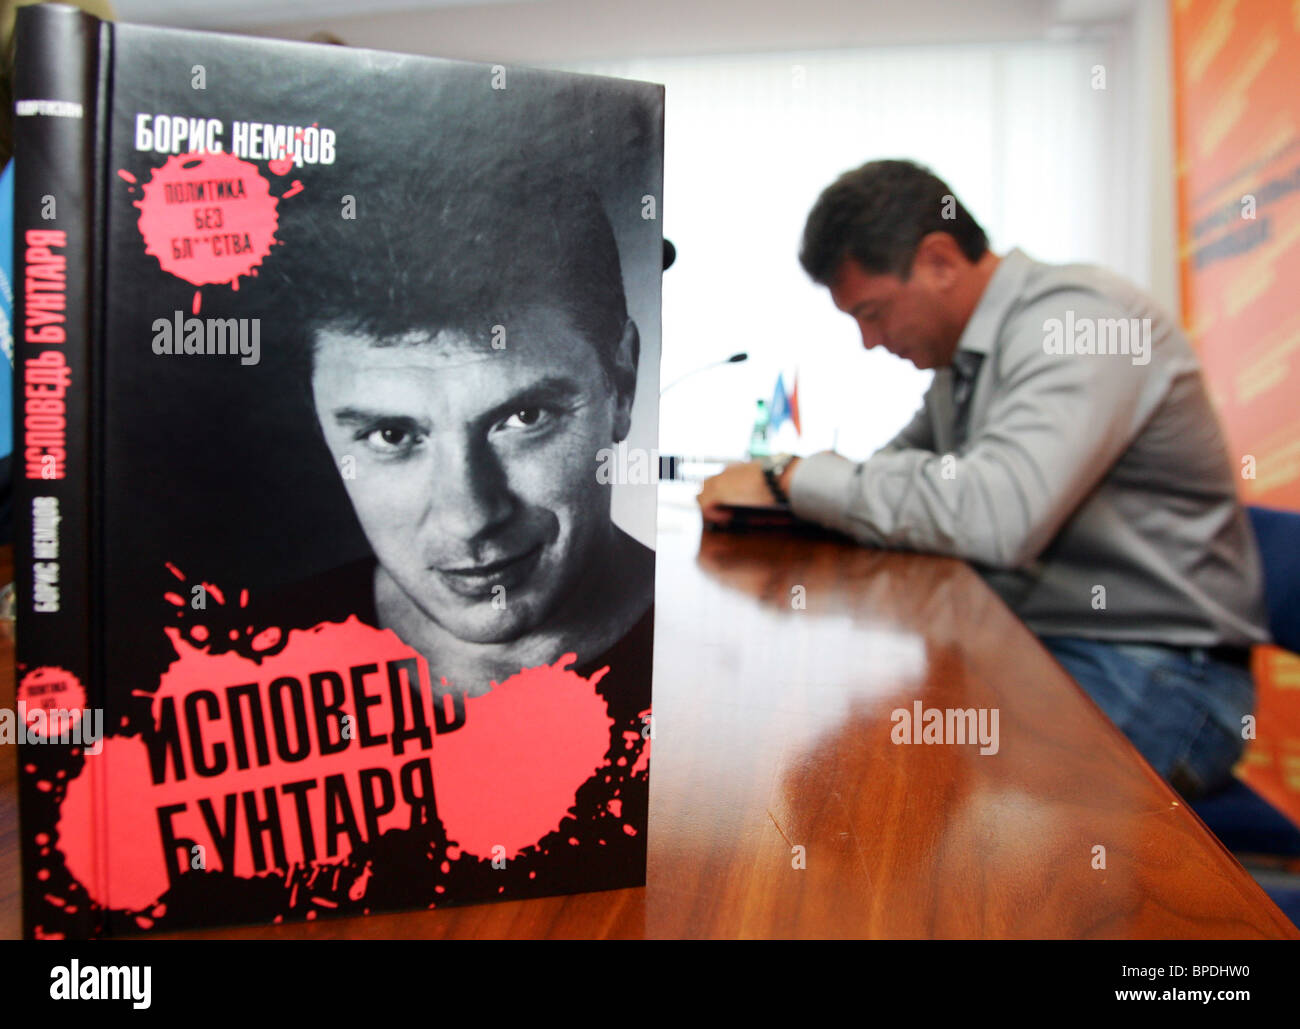 Launch party for Boris Nemtsov's book The Rebel's Confession held in Moscow - Stock Image